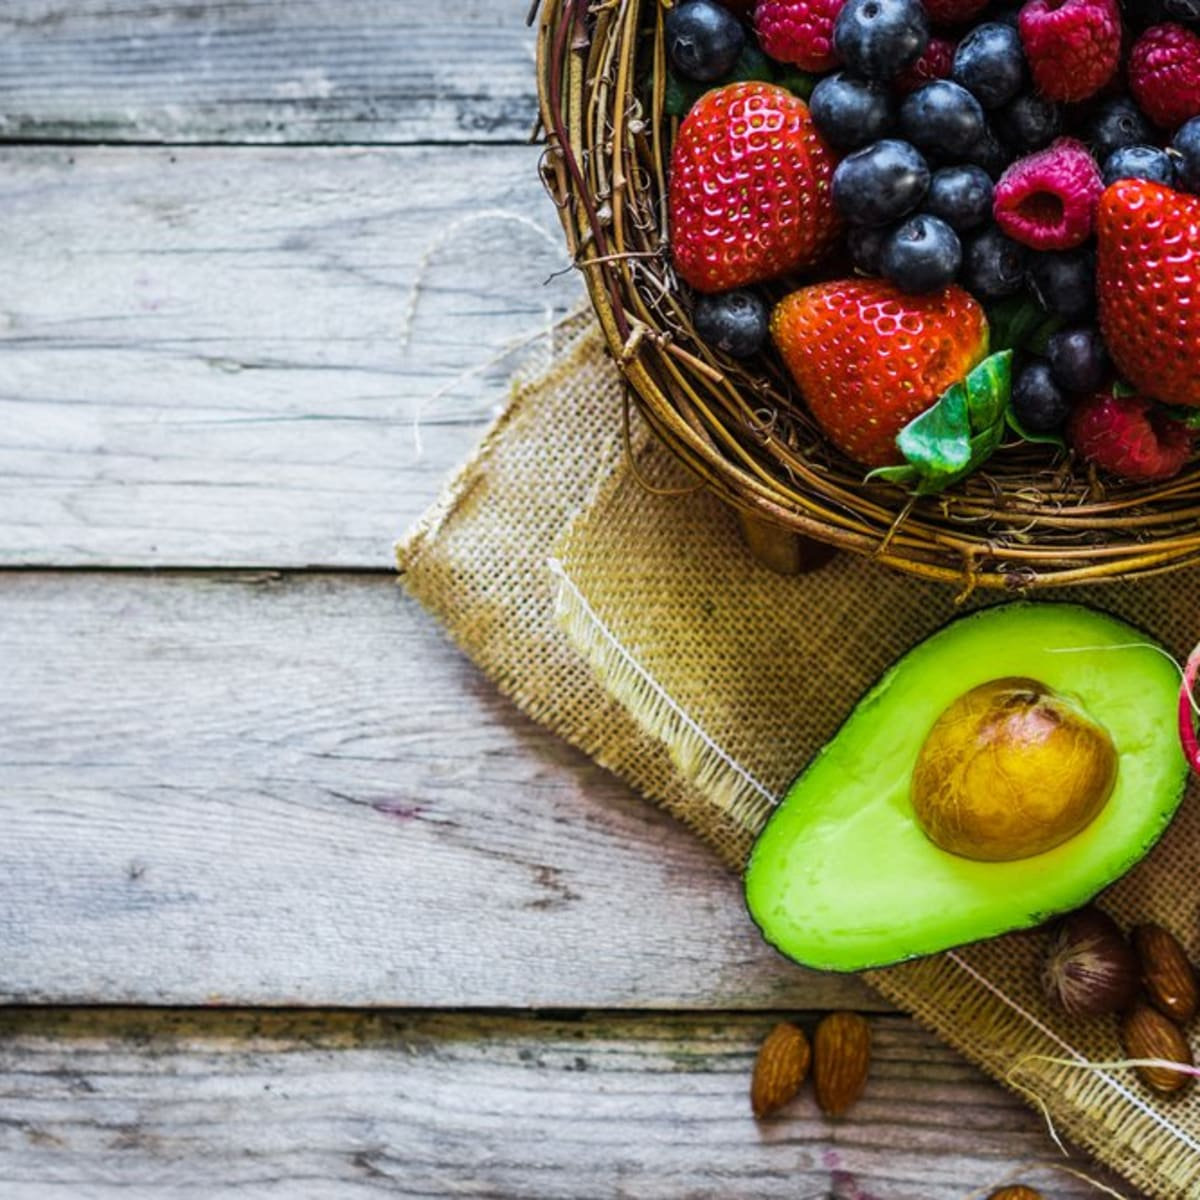 21 Foods that Increase Metabolism (You'll Love #7) - Organic Authority